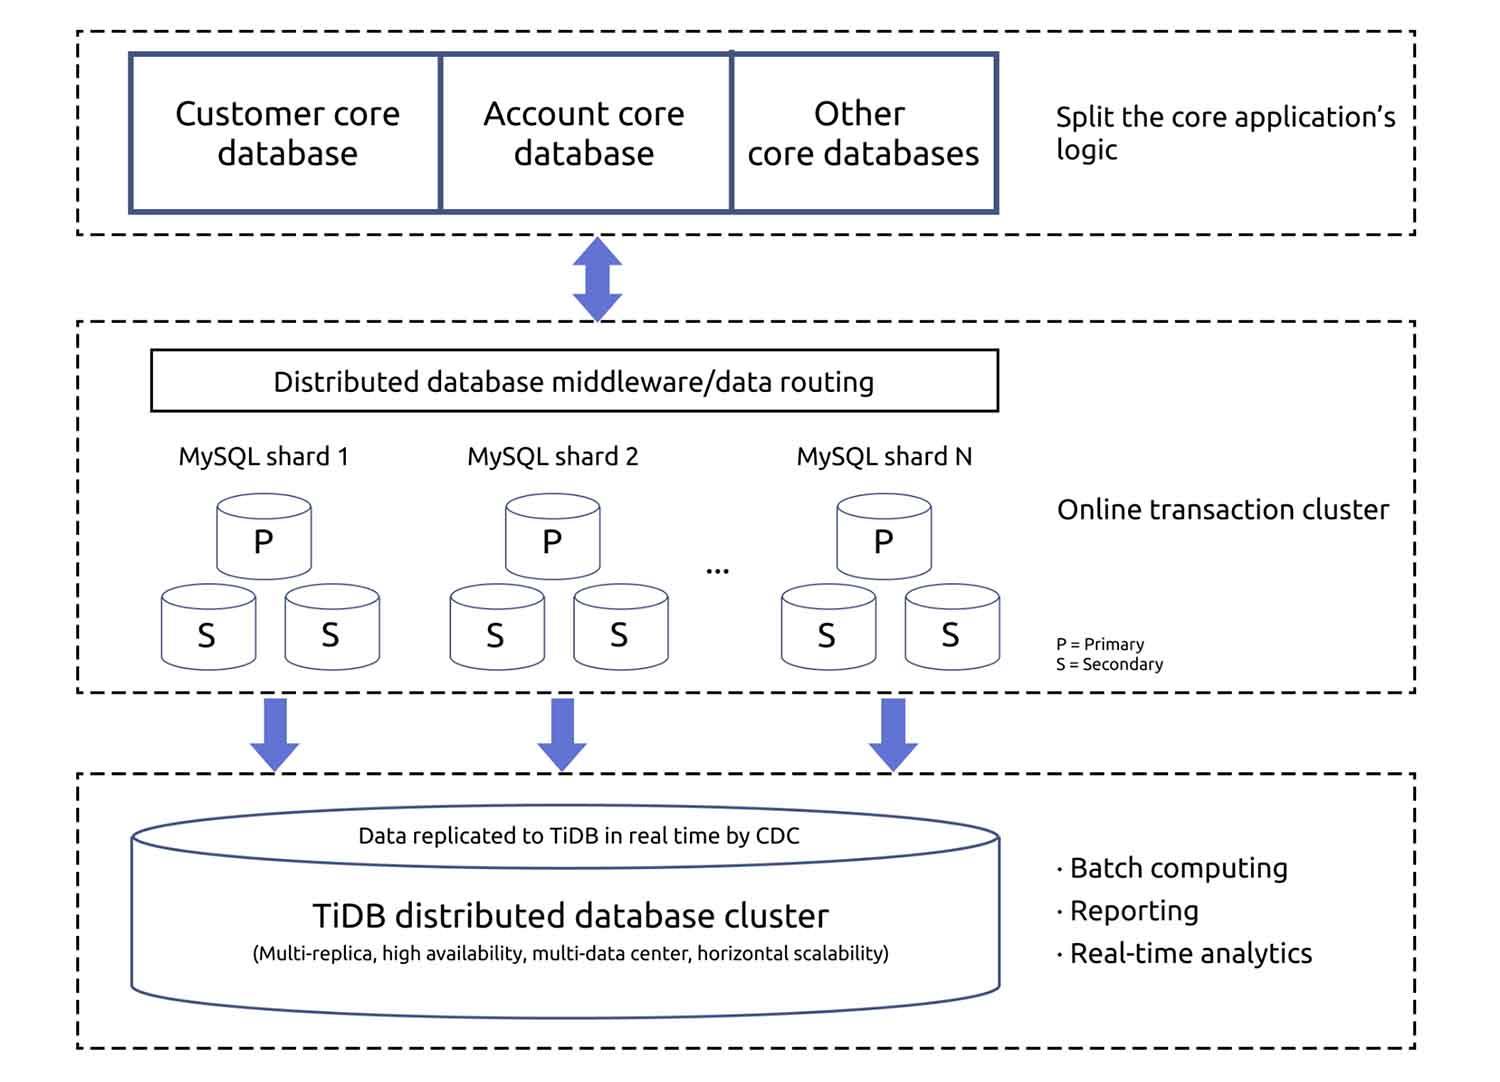 Use MySQL for online transactions with TiDB as the backend